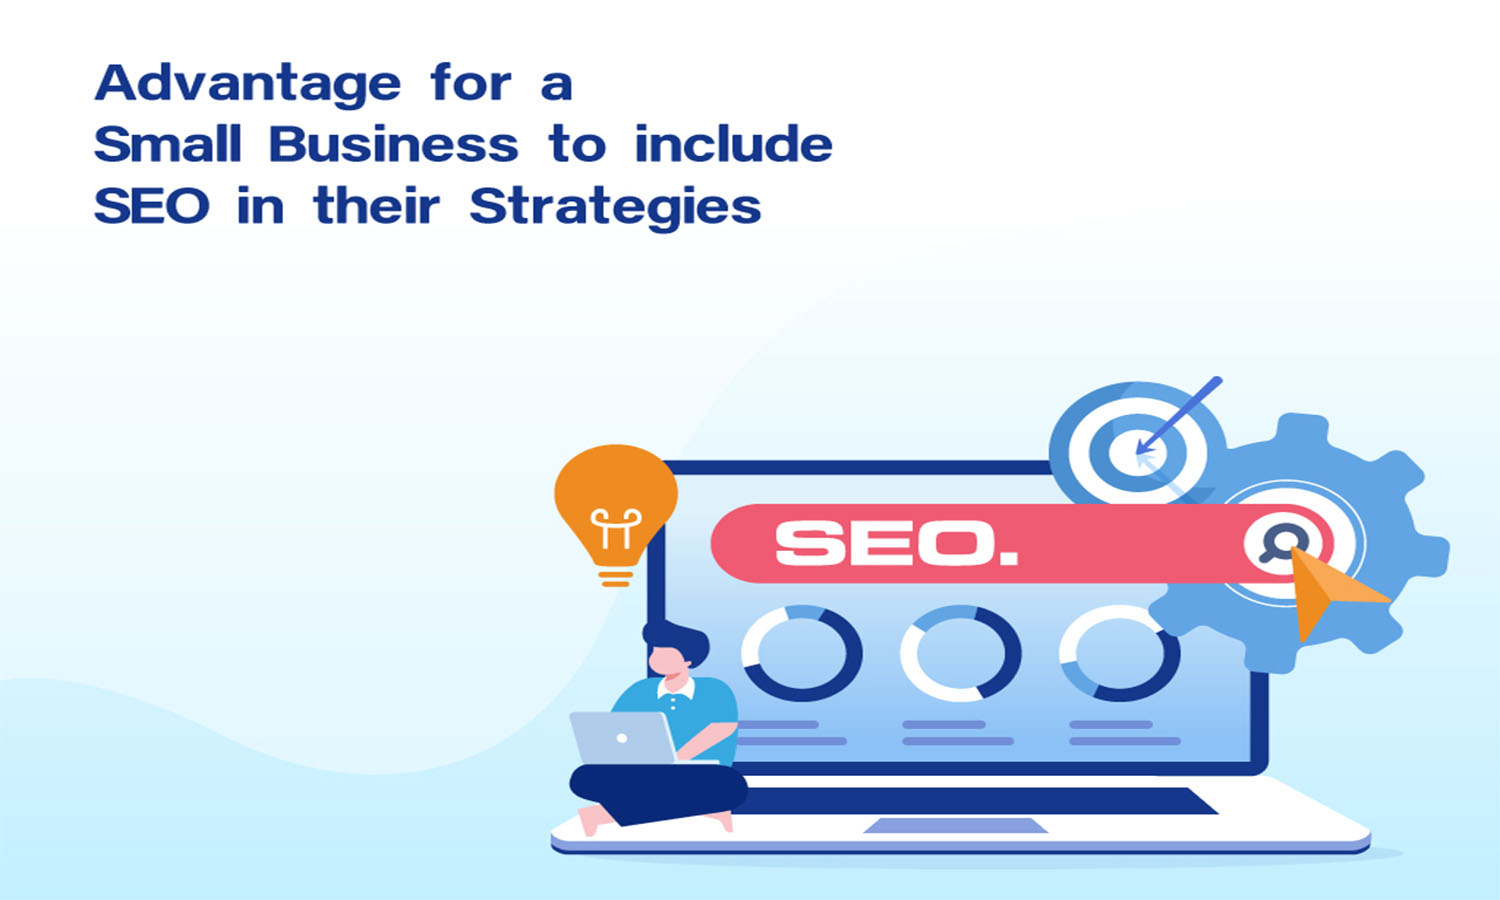 Advantage for A Small Business to Include SEO In Their Strategies